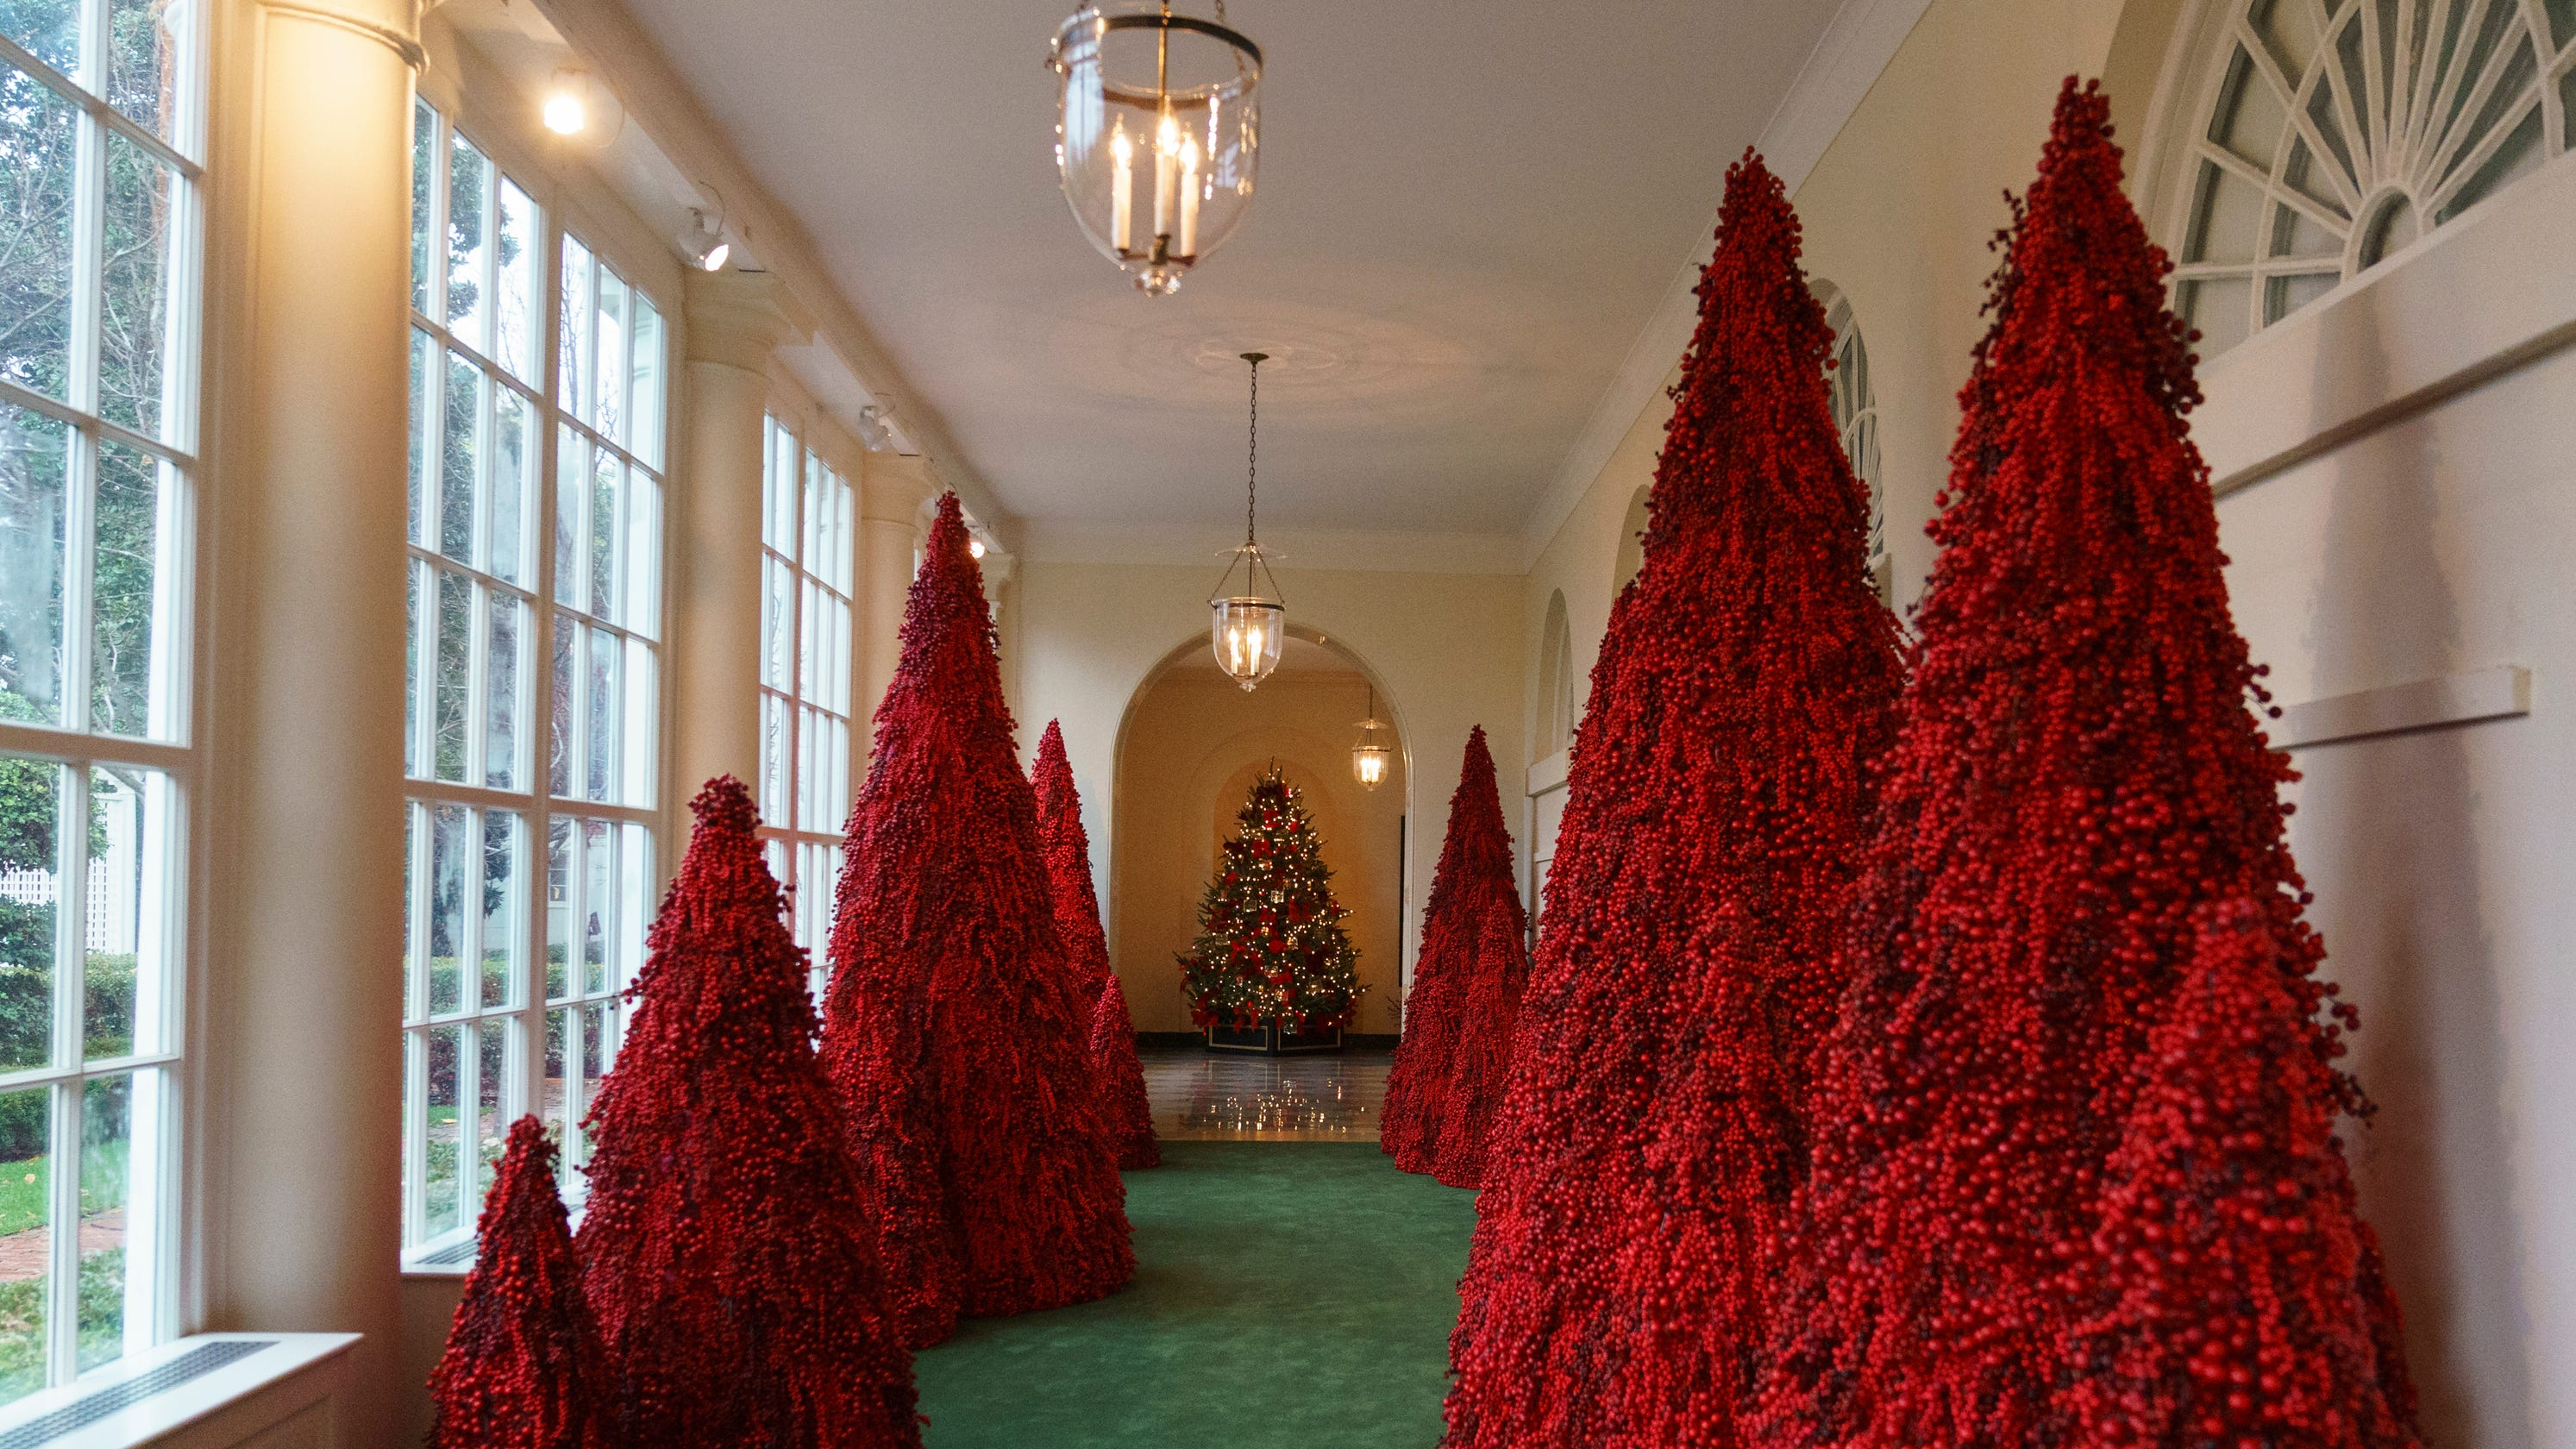 Whitehouse Christmas Decorations.Trump S Red Christmas Trees Have Twitter Crying Handmaid S